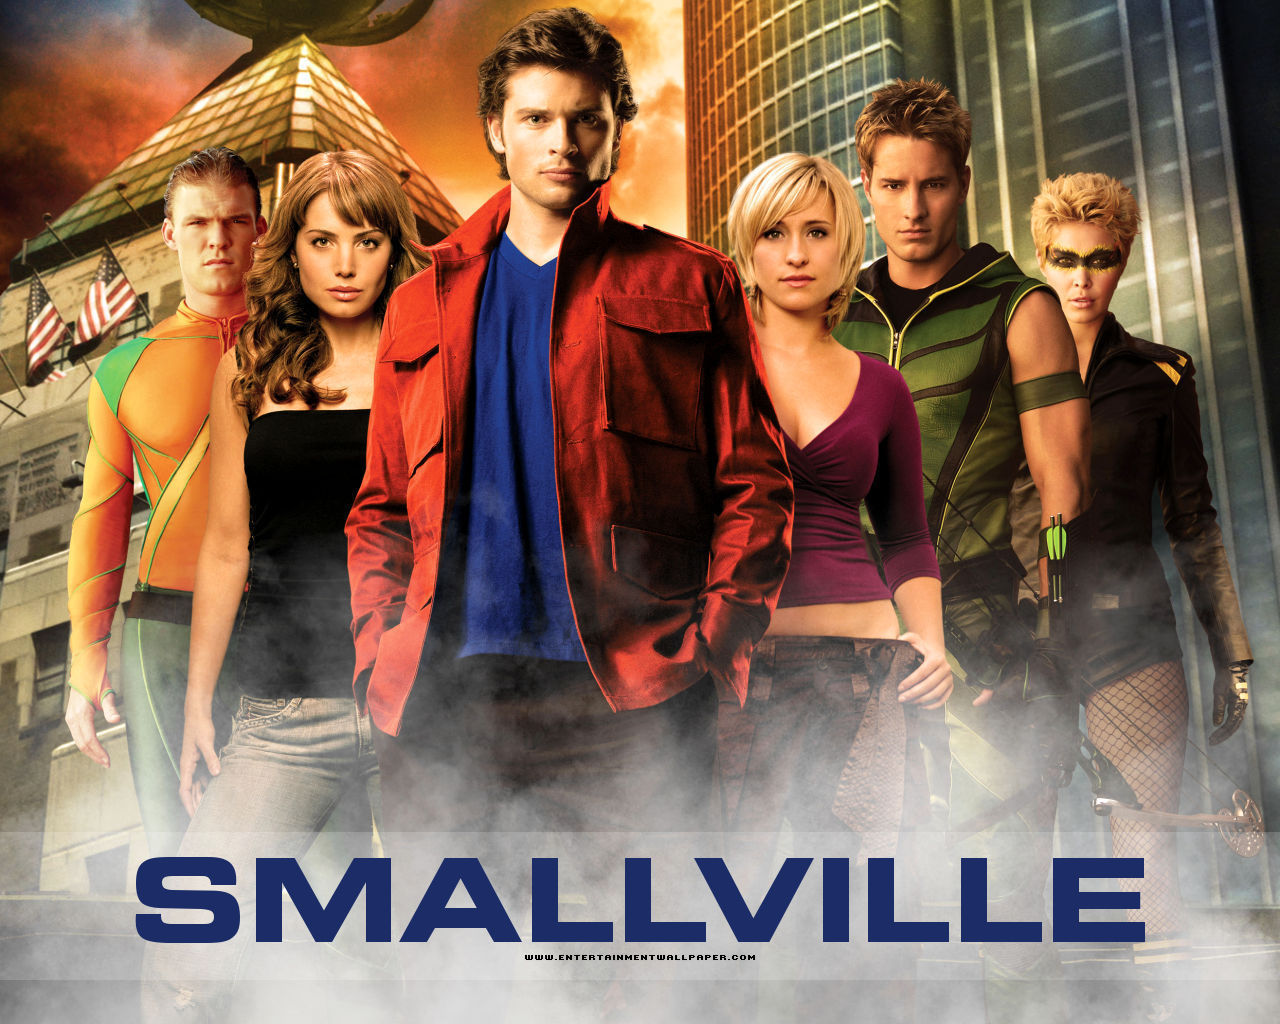 http://vignette1.wikia.nocookie.net/smallville/images/b/bc/Smallville-smallville-3036511-1280-1024.jpg/revision/latest?cb=20120101071829